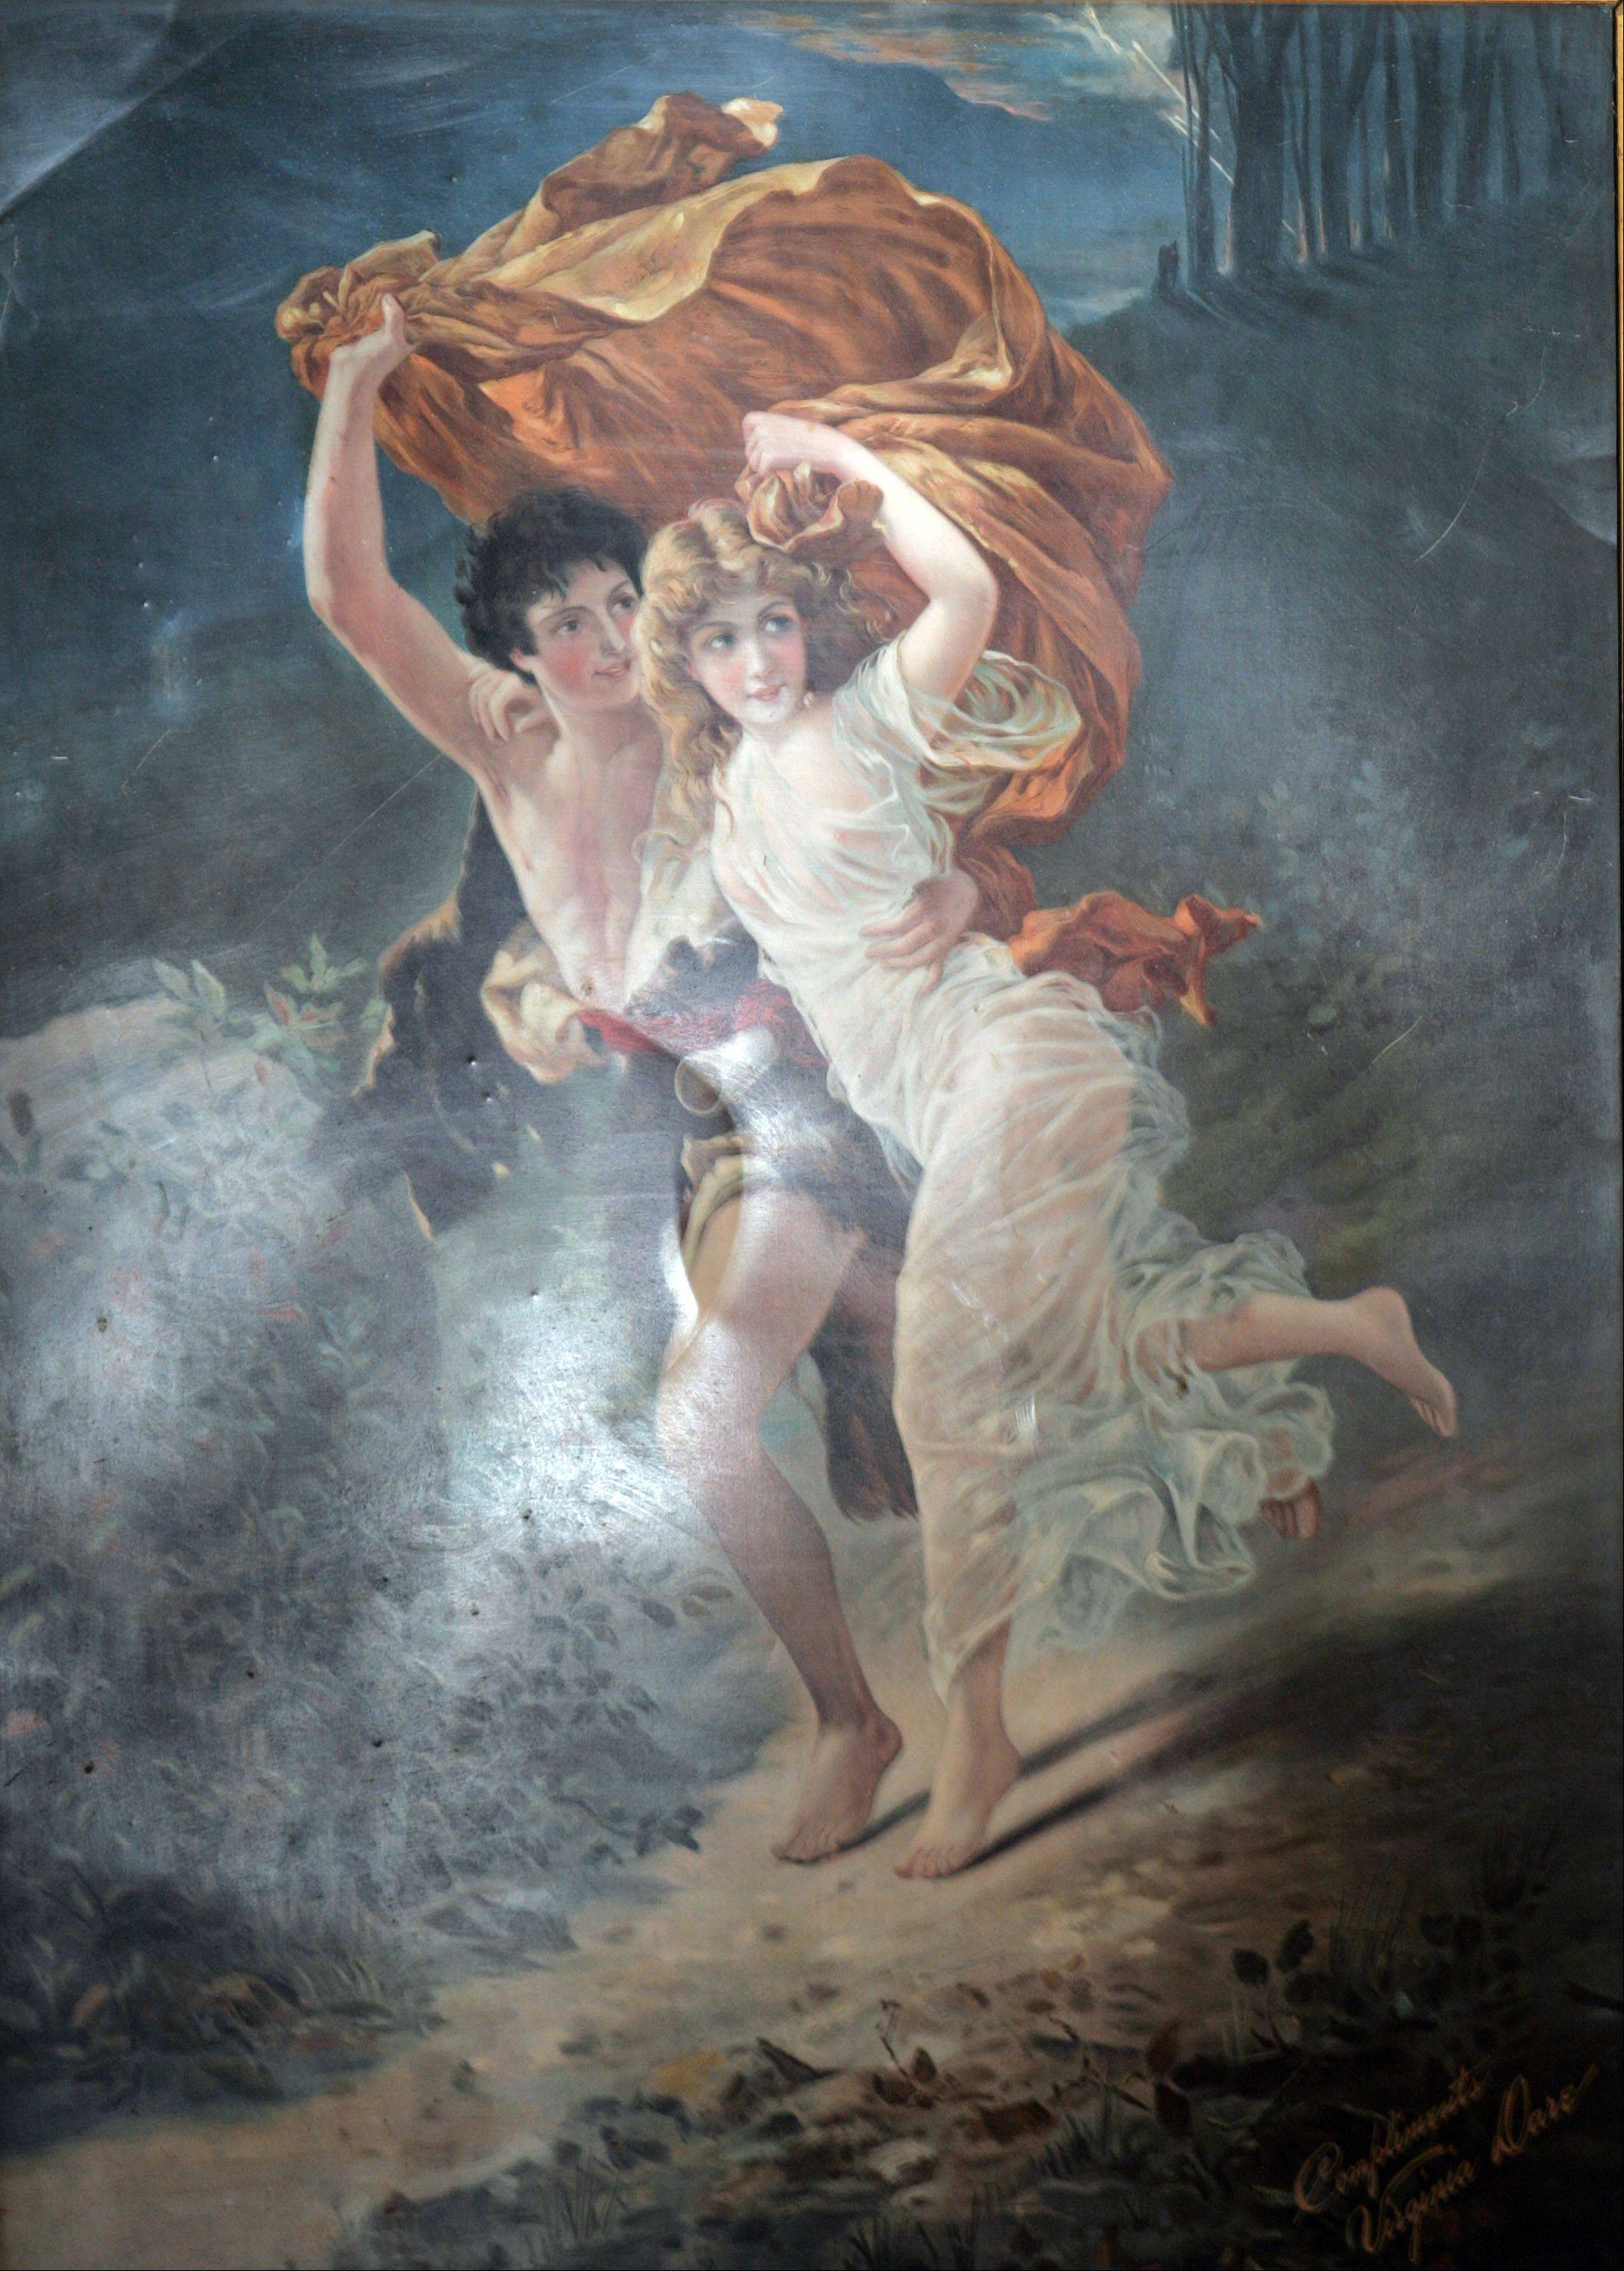 Pierre Auguste Cot's The Storm inspired many copies like this one.